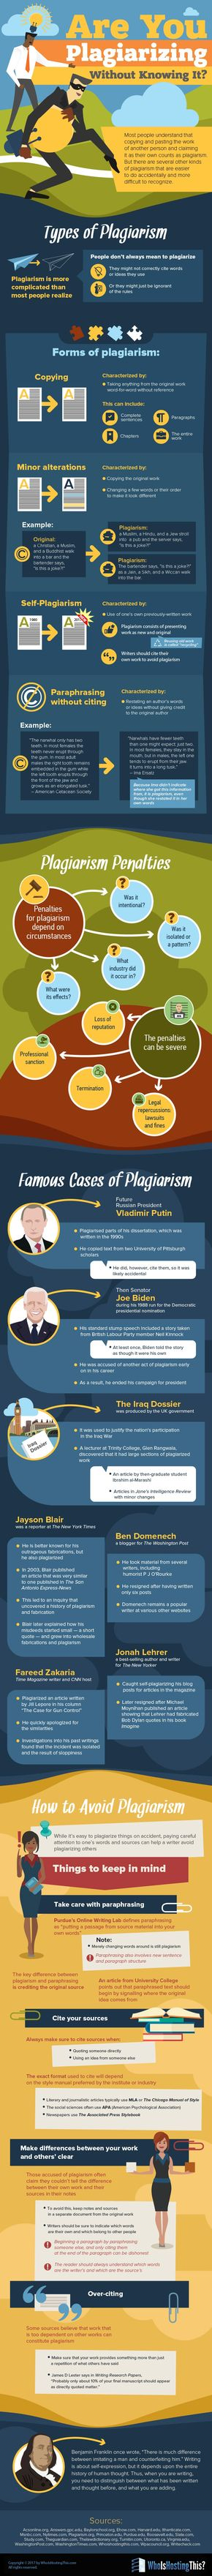 Are You Plagiarizing Without Knowing It? infographic